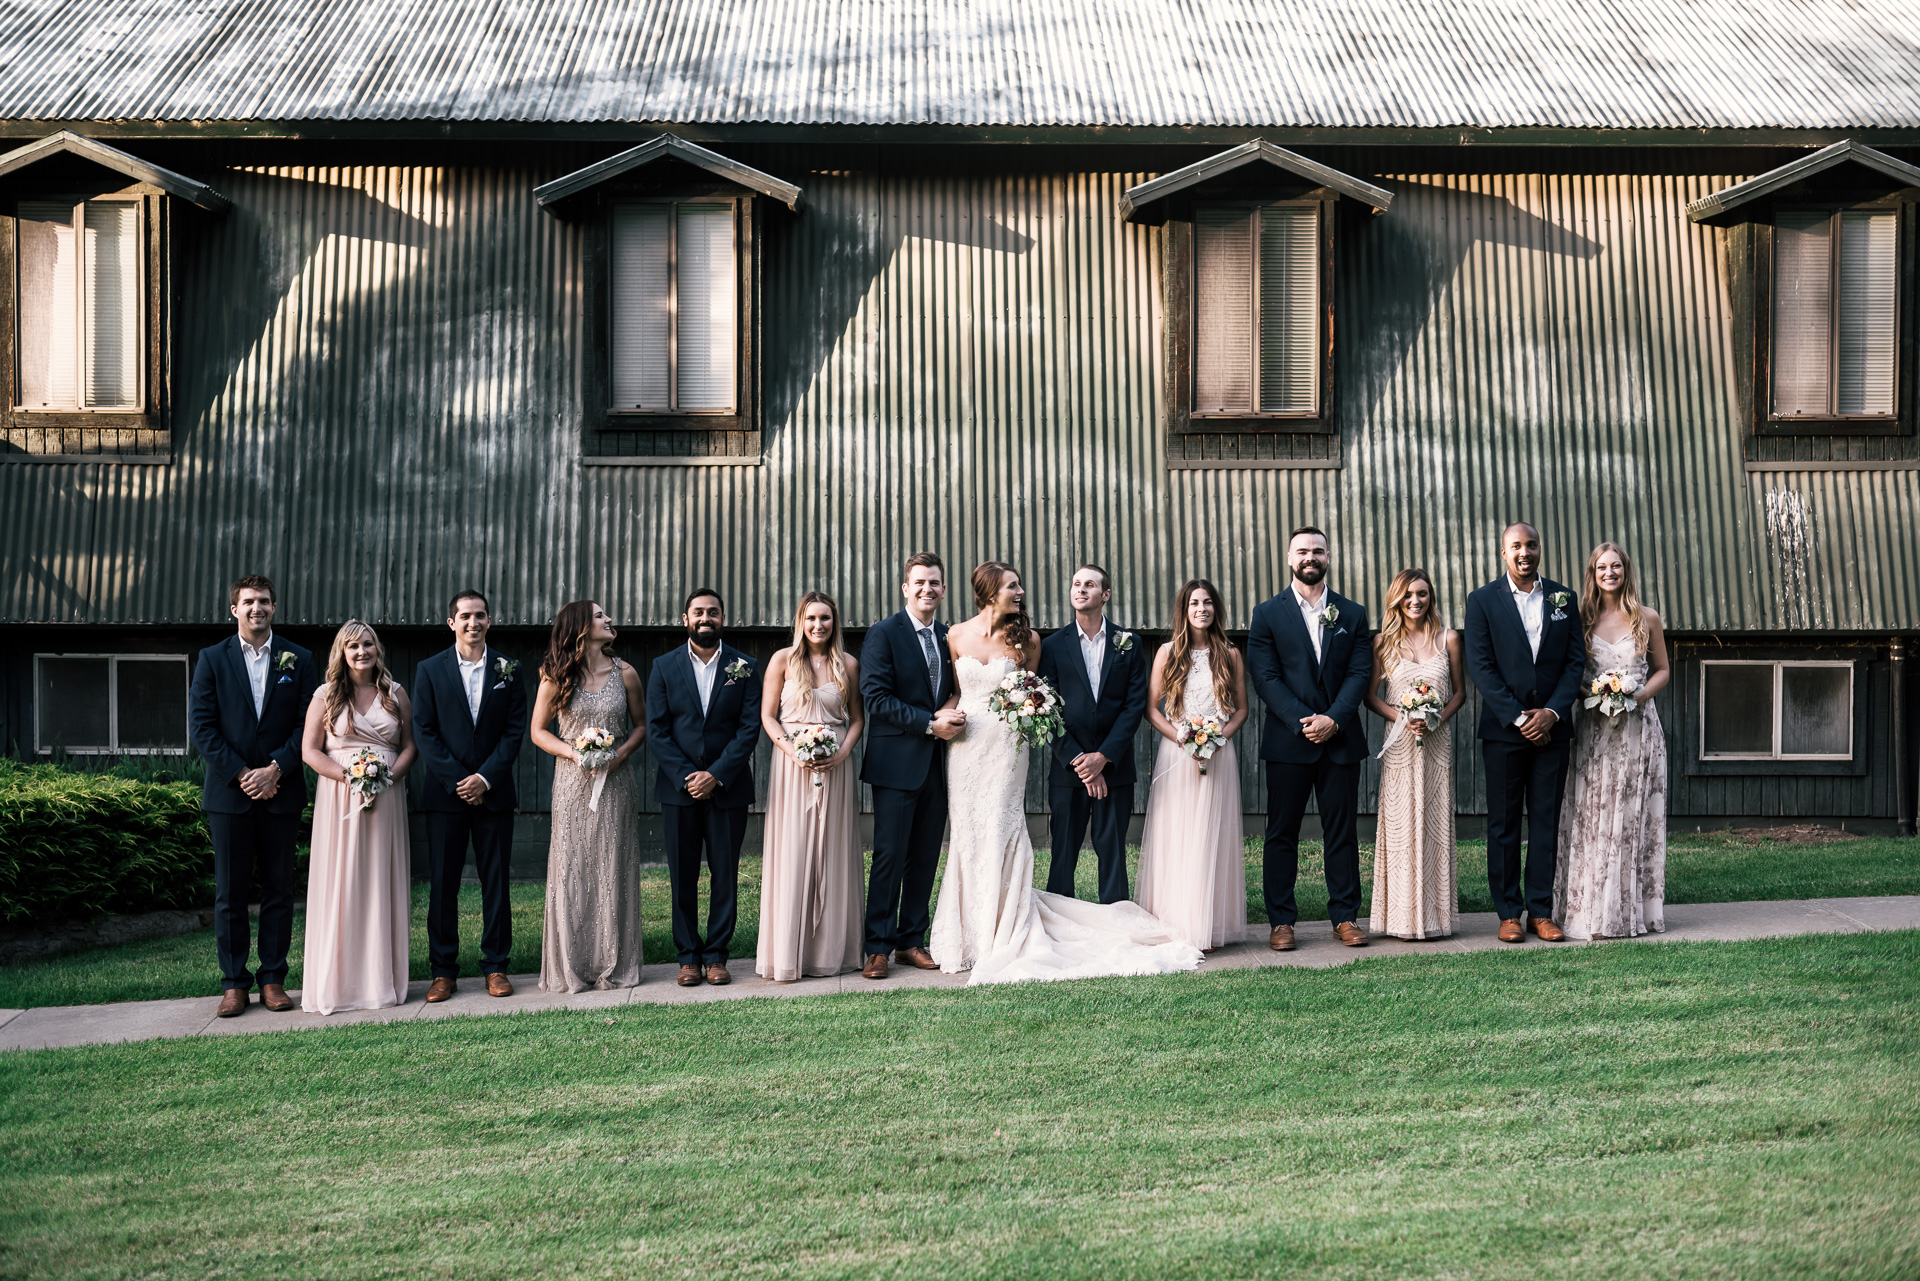 bridal party lines up for photos at the secret garden located at the Historic Parish ranch in Oak Glen California